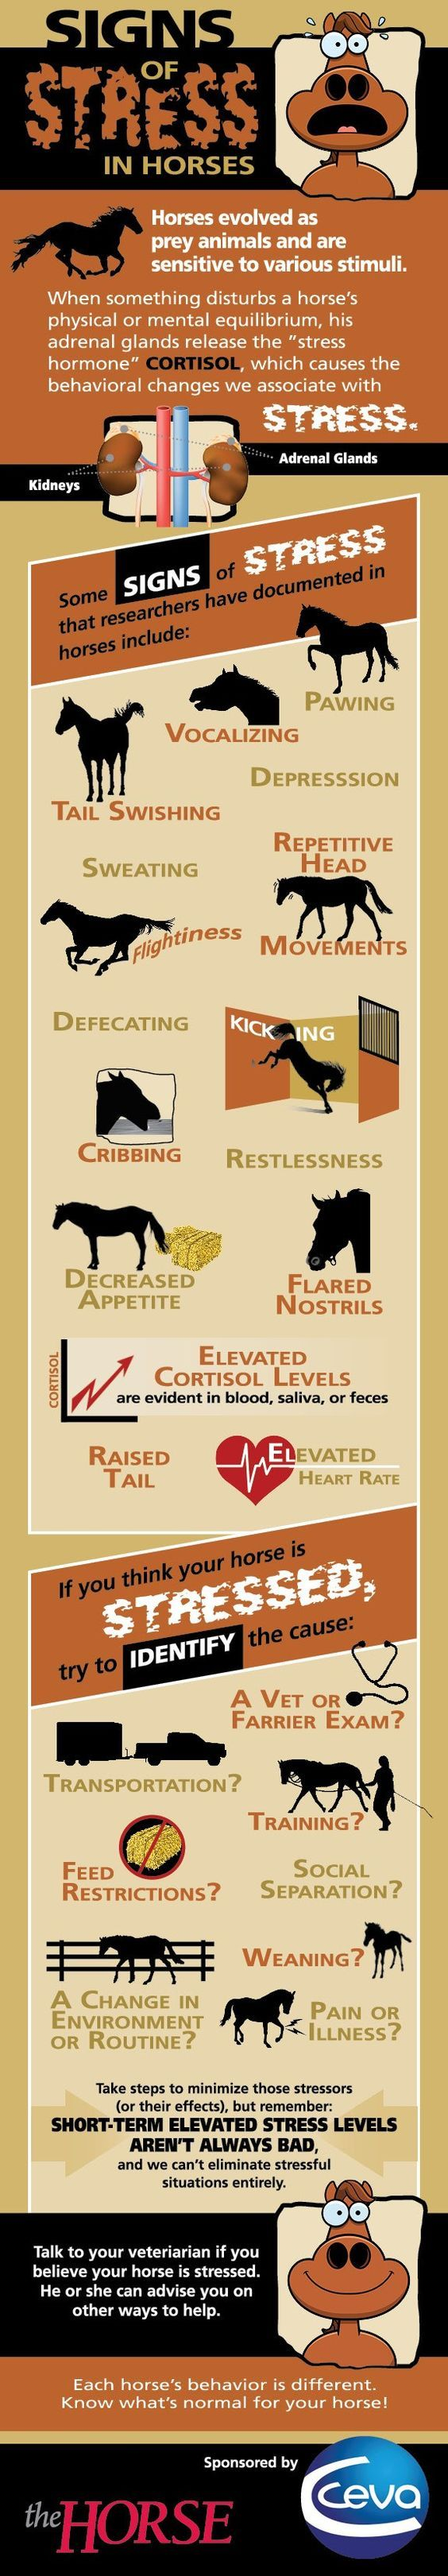 Infographic: Signs of Stress in Horses   TheHorse.com